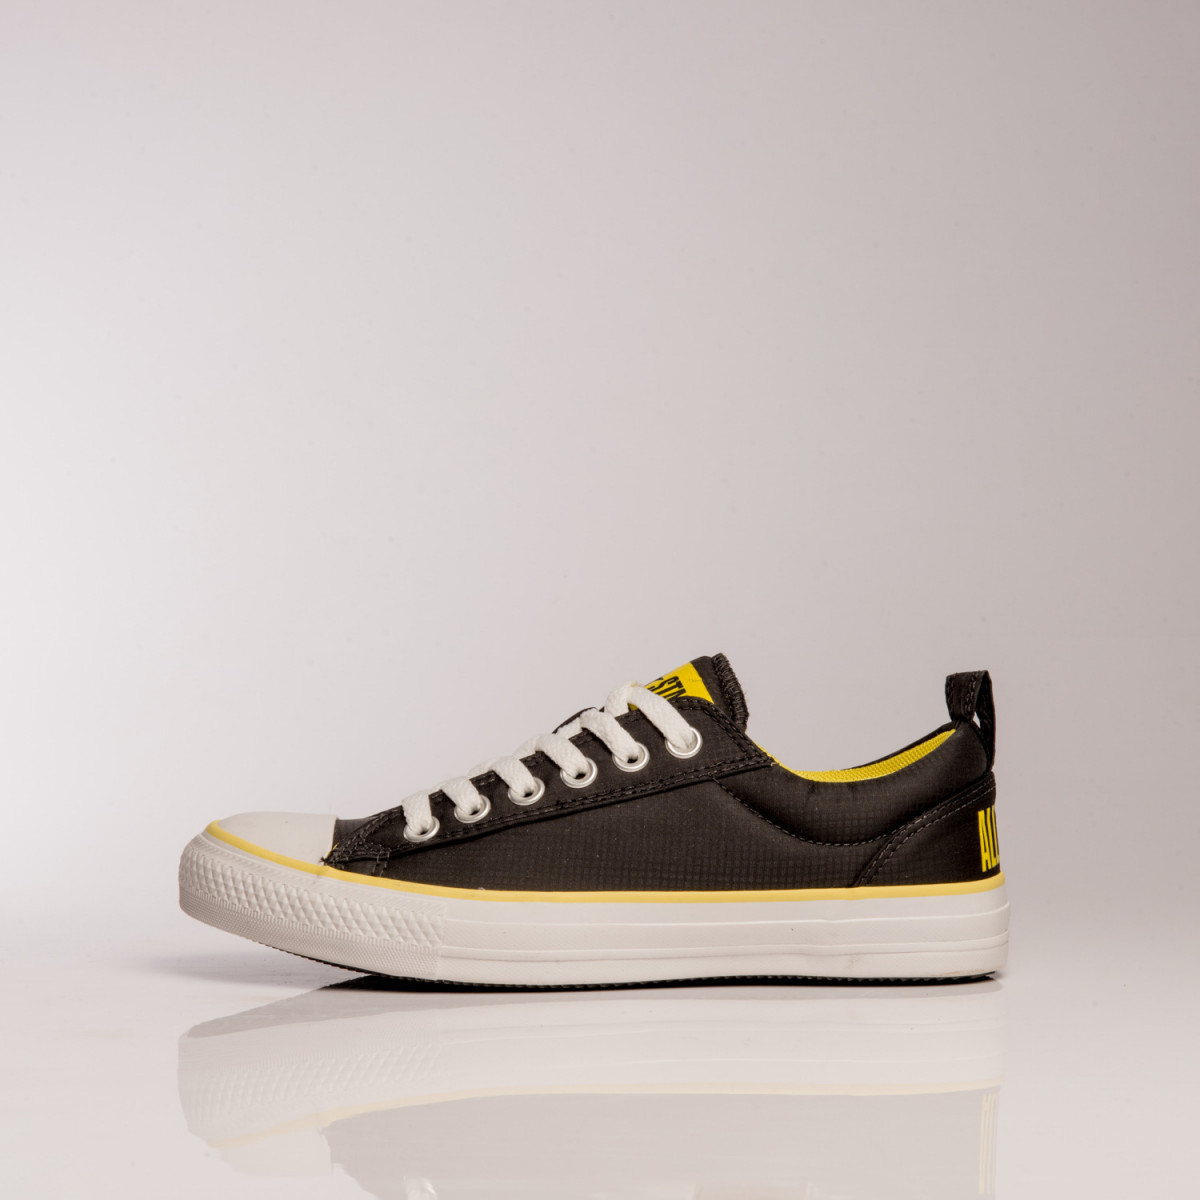 ZAPATILLAS CONVERSE CHUCK TAYLOR ALL STAR EXTREME STREET OX